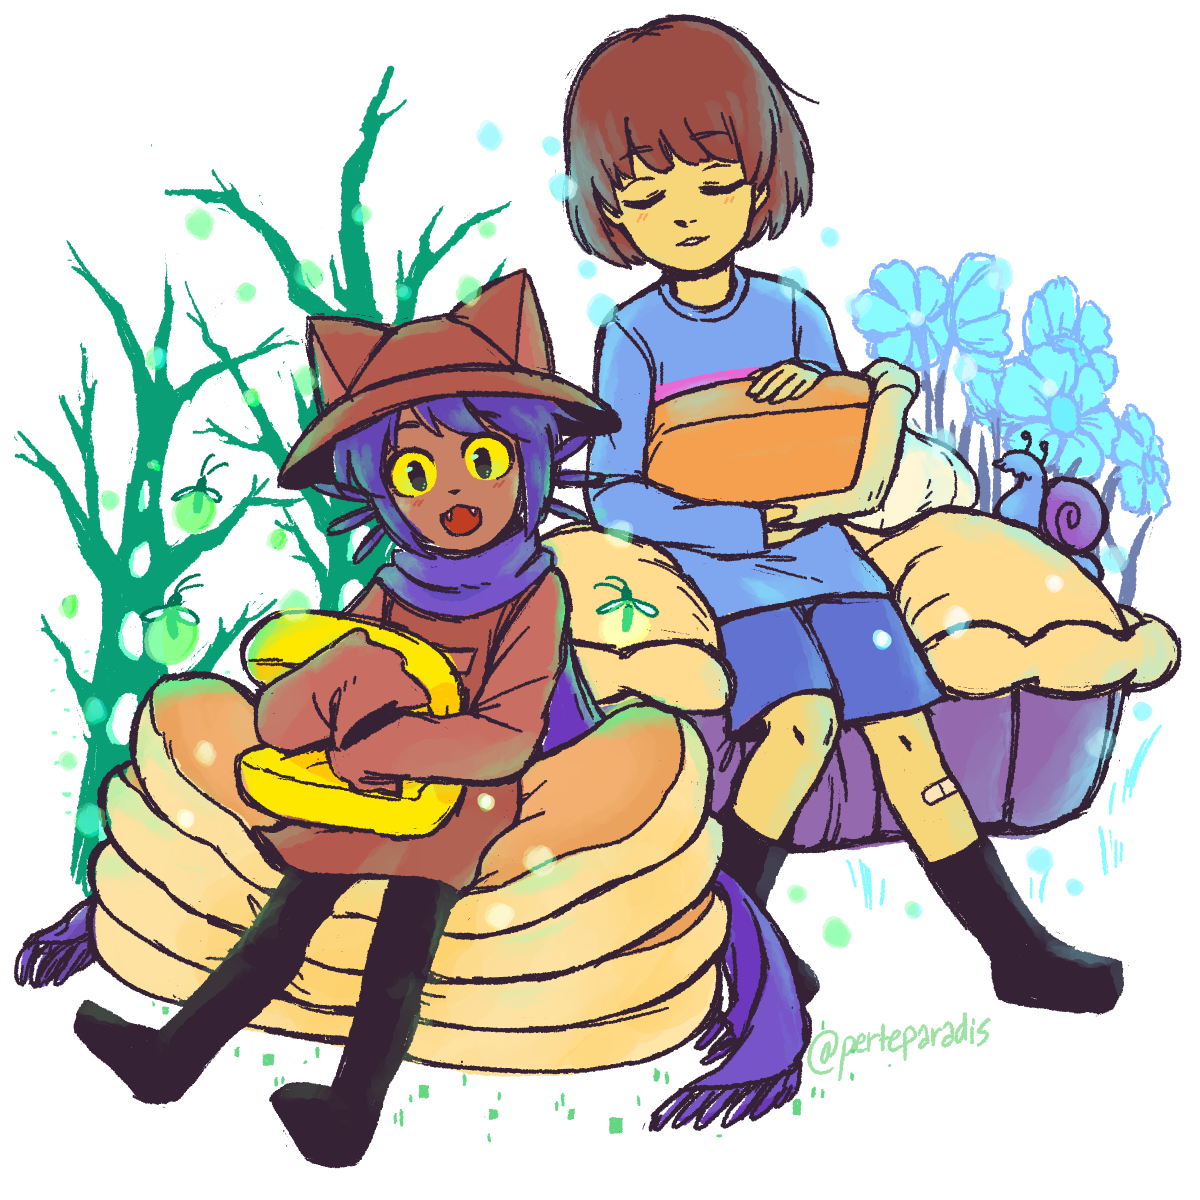 Foods clipart character. Favorite undertale know your